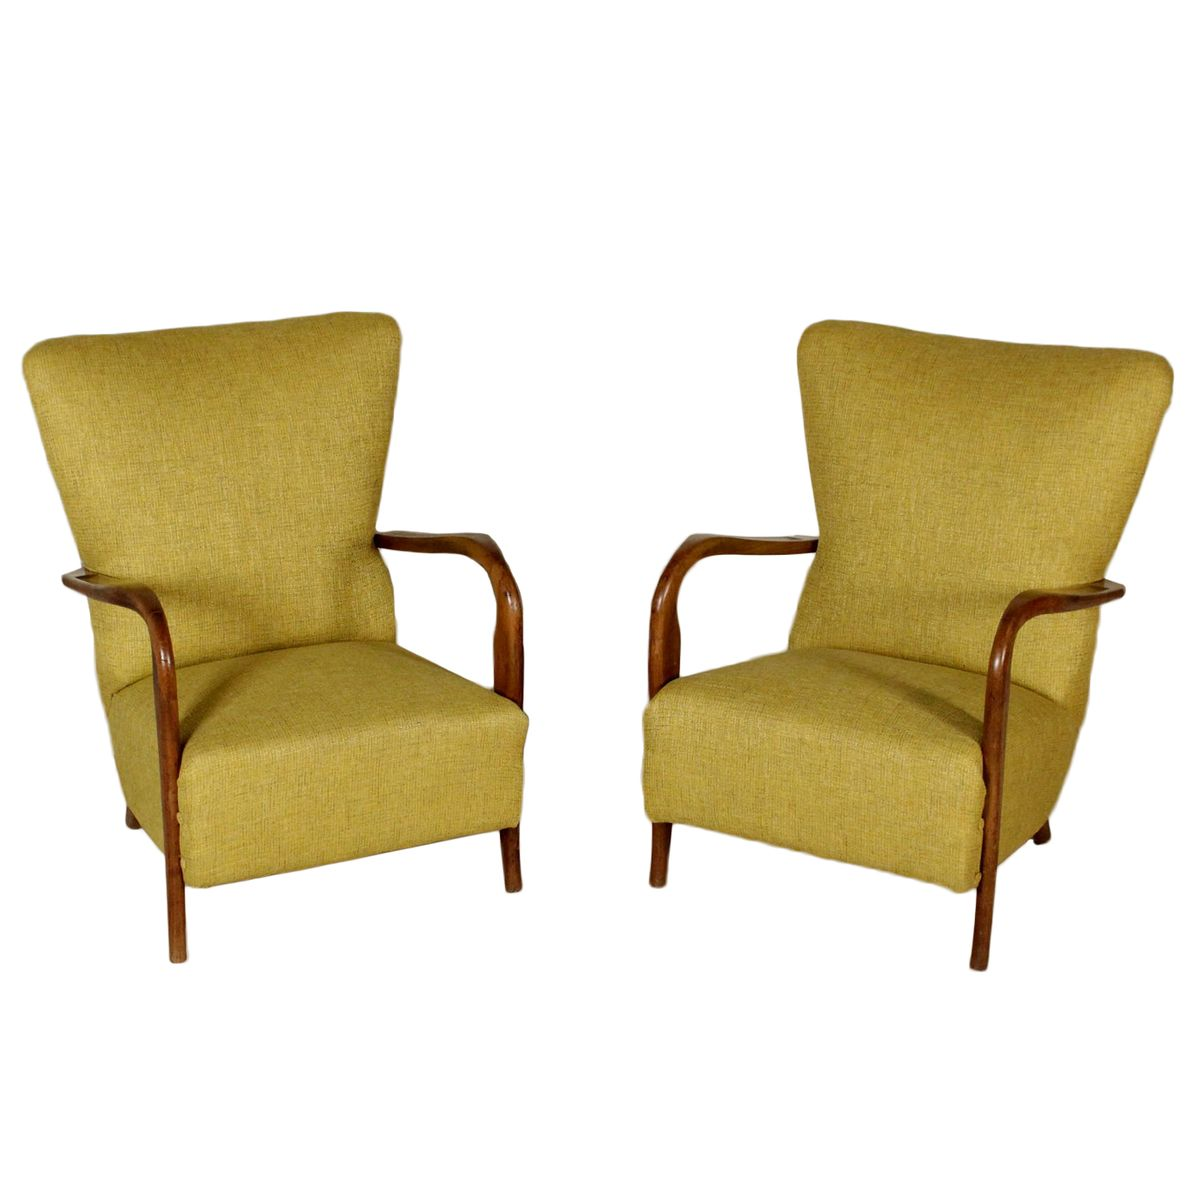 fabric armchairs in beech with spring padding 1950s set